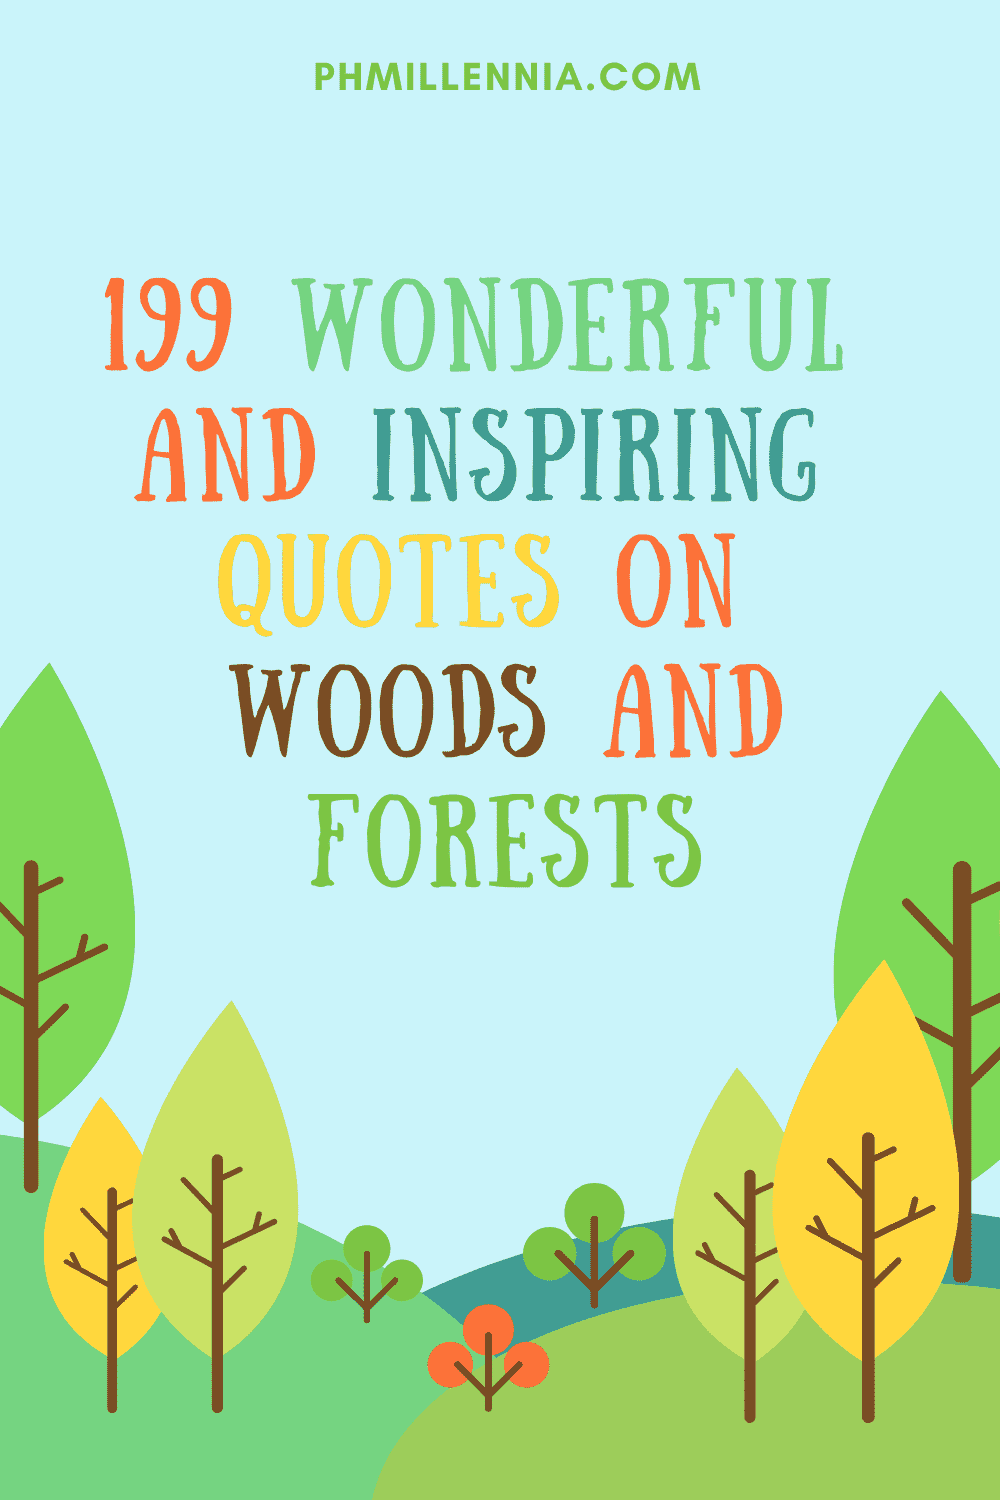 199 Wonderful and Inspiring Quotes on Woods and Forests | phmillennia.com